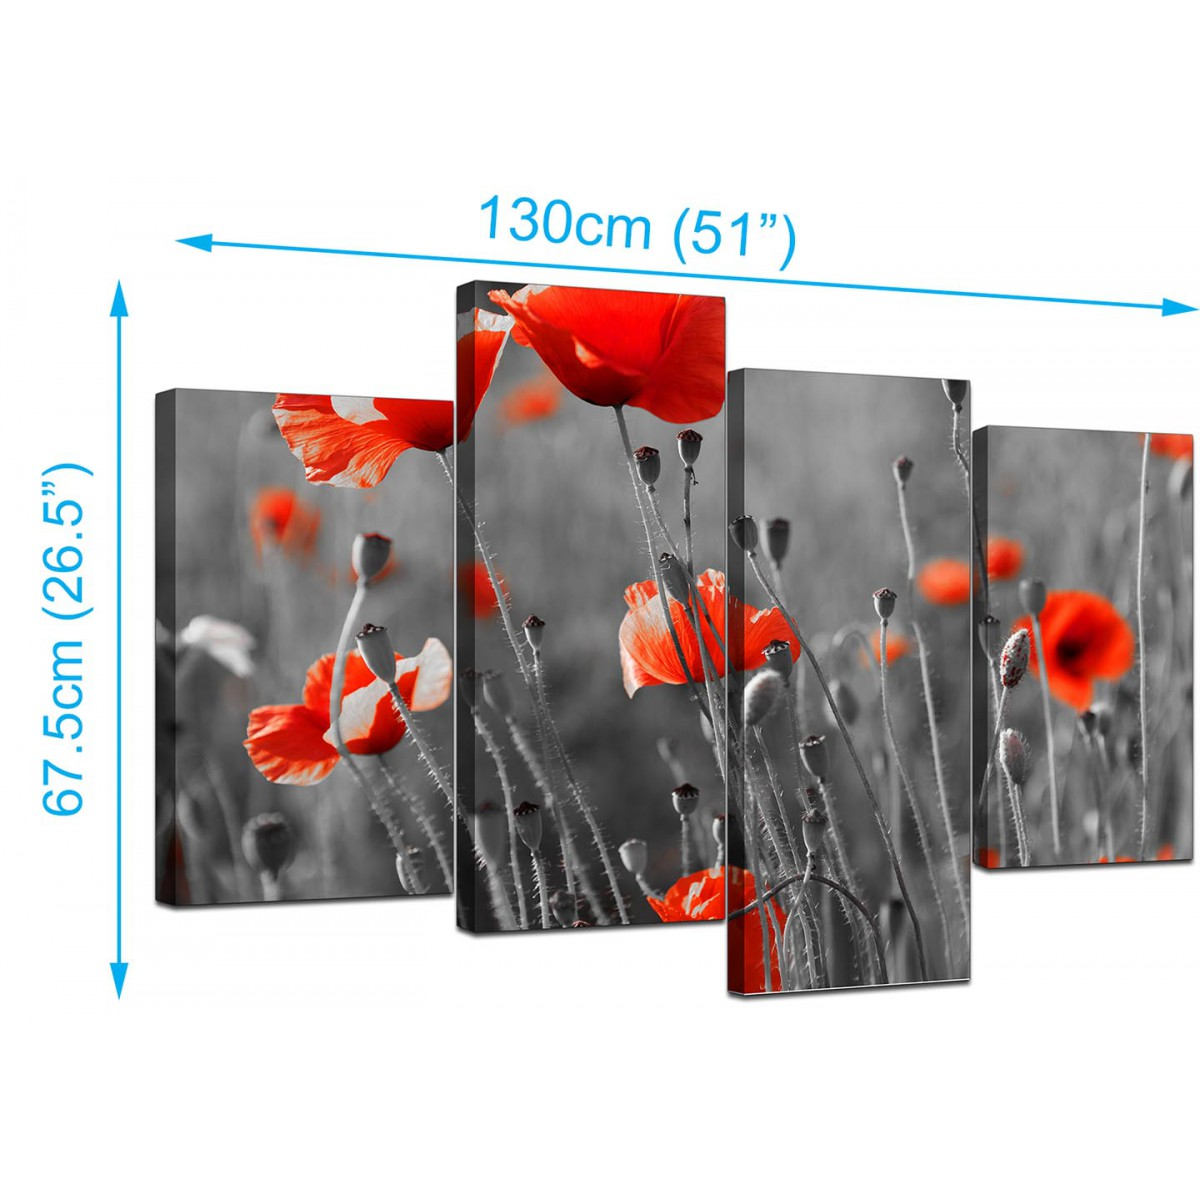 Extra Large Xl Floral Canvas Picture Red Poppys Framed - Garten Bambus Red Zebra